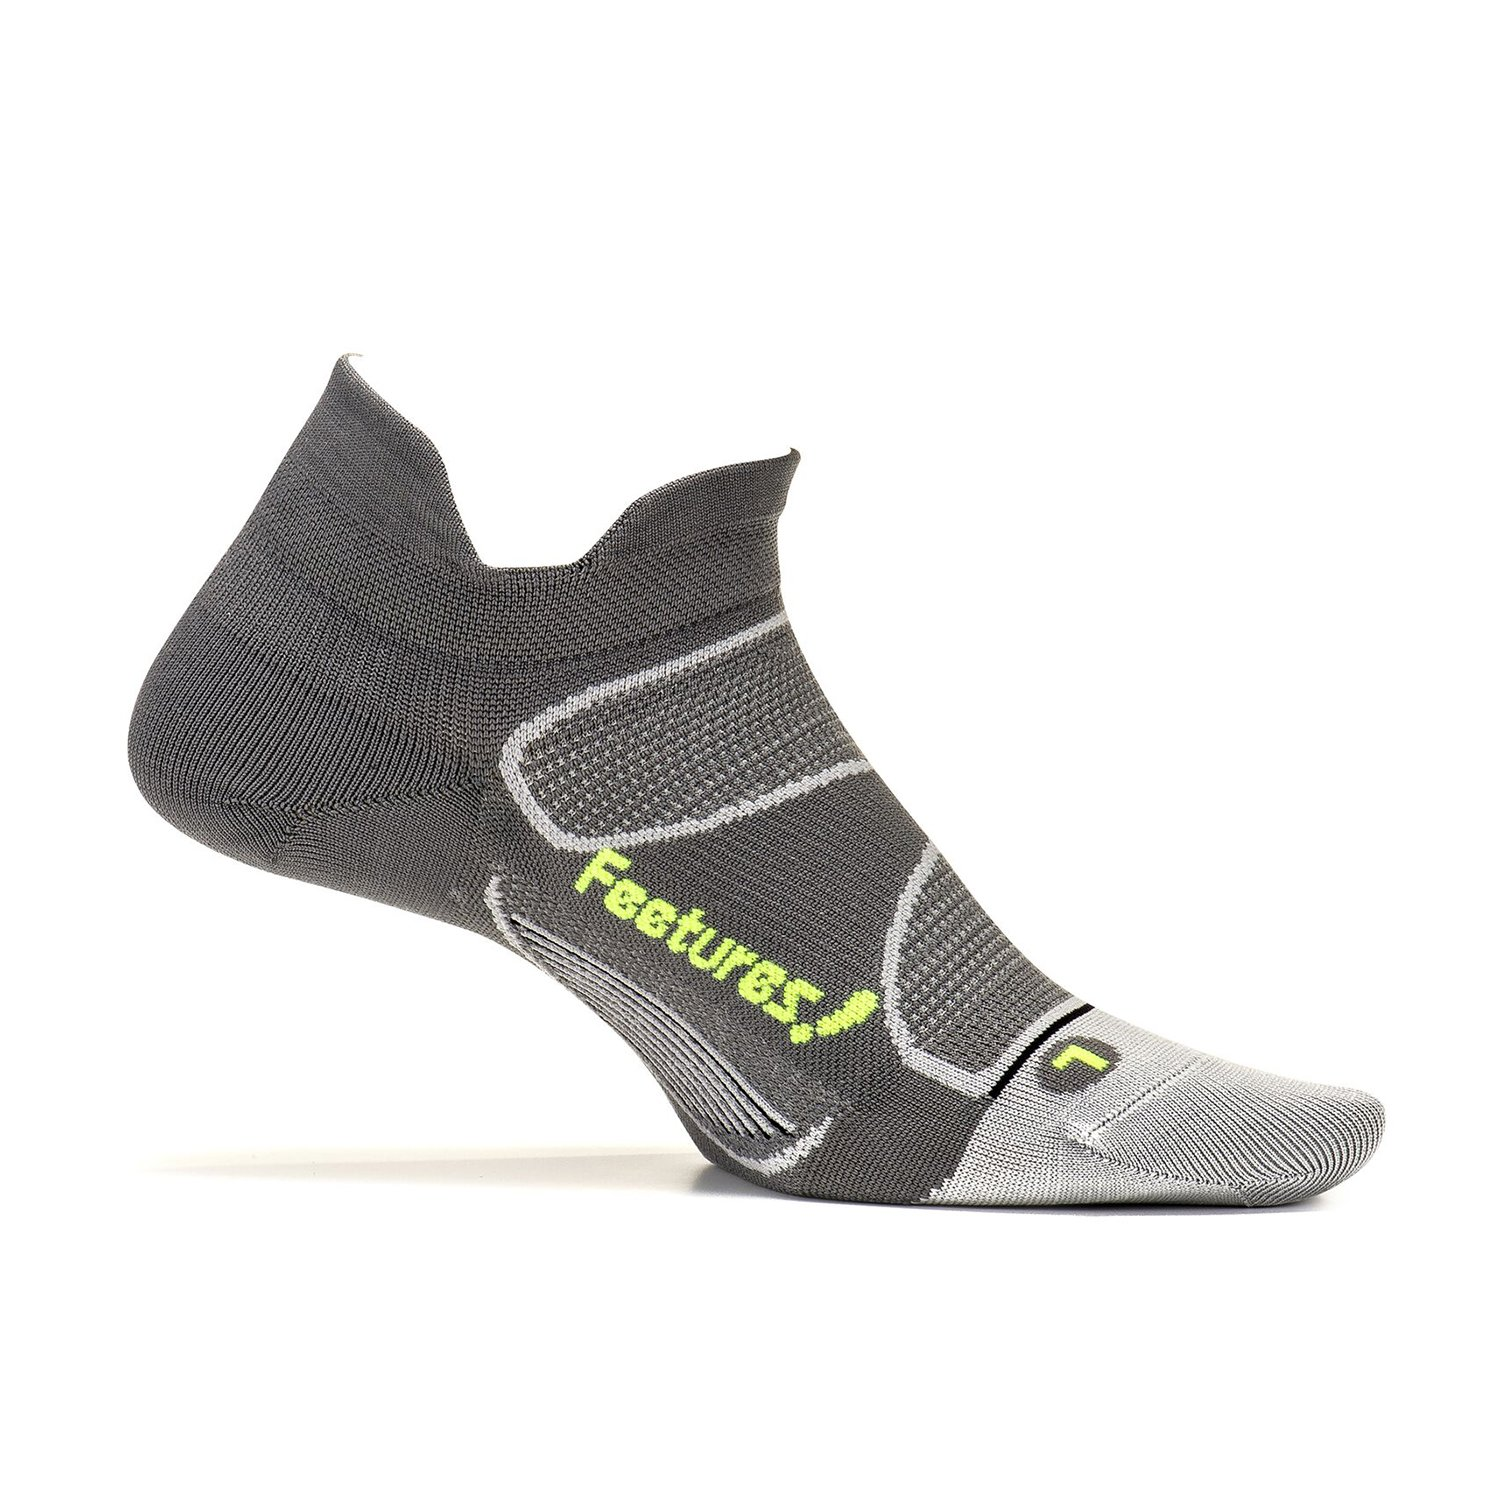 Feetures - Elite Ultra Light - No Show Tab - Athletic Running Socks for Men and Women - Graphite + Reflector - Size Small